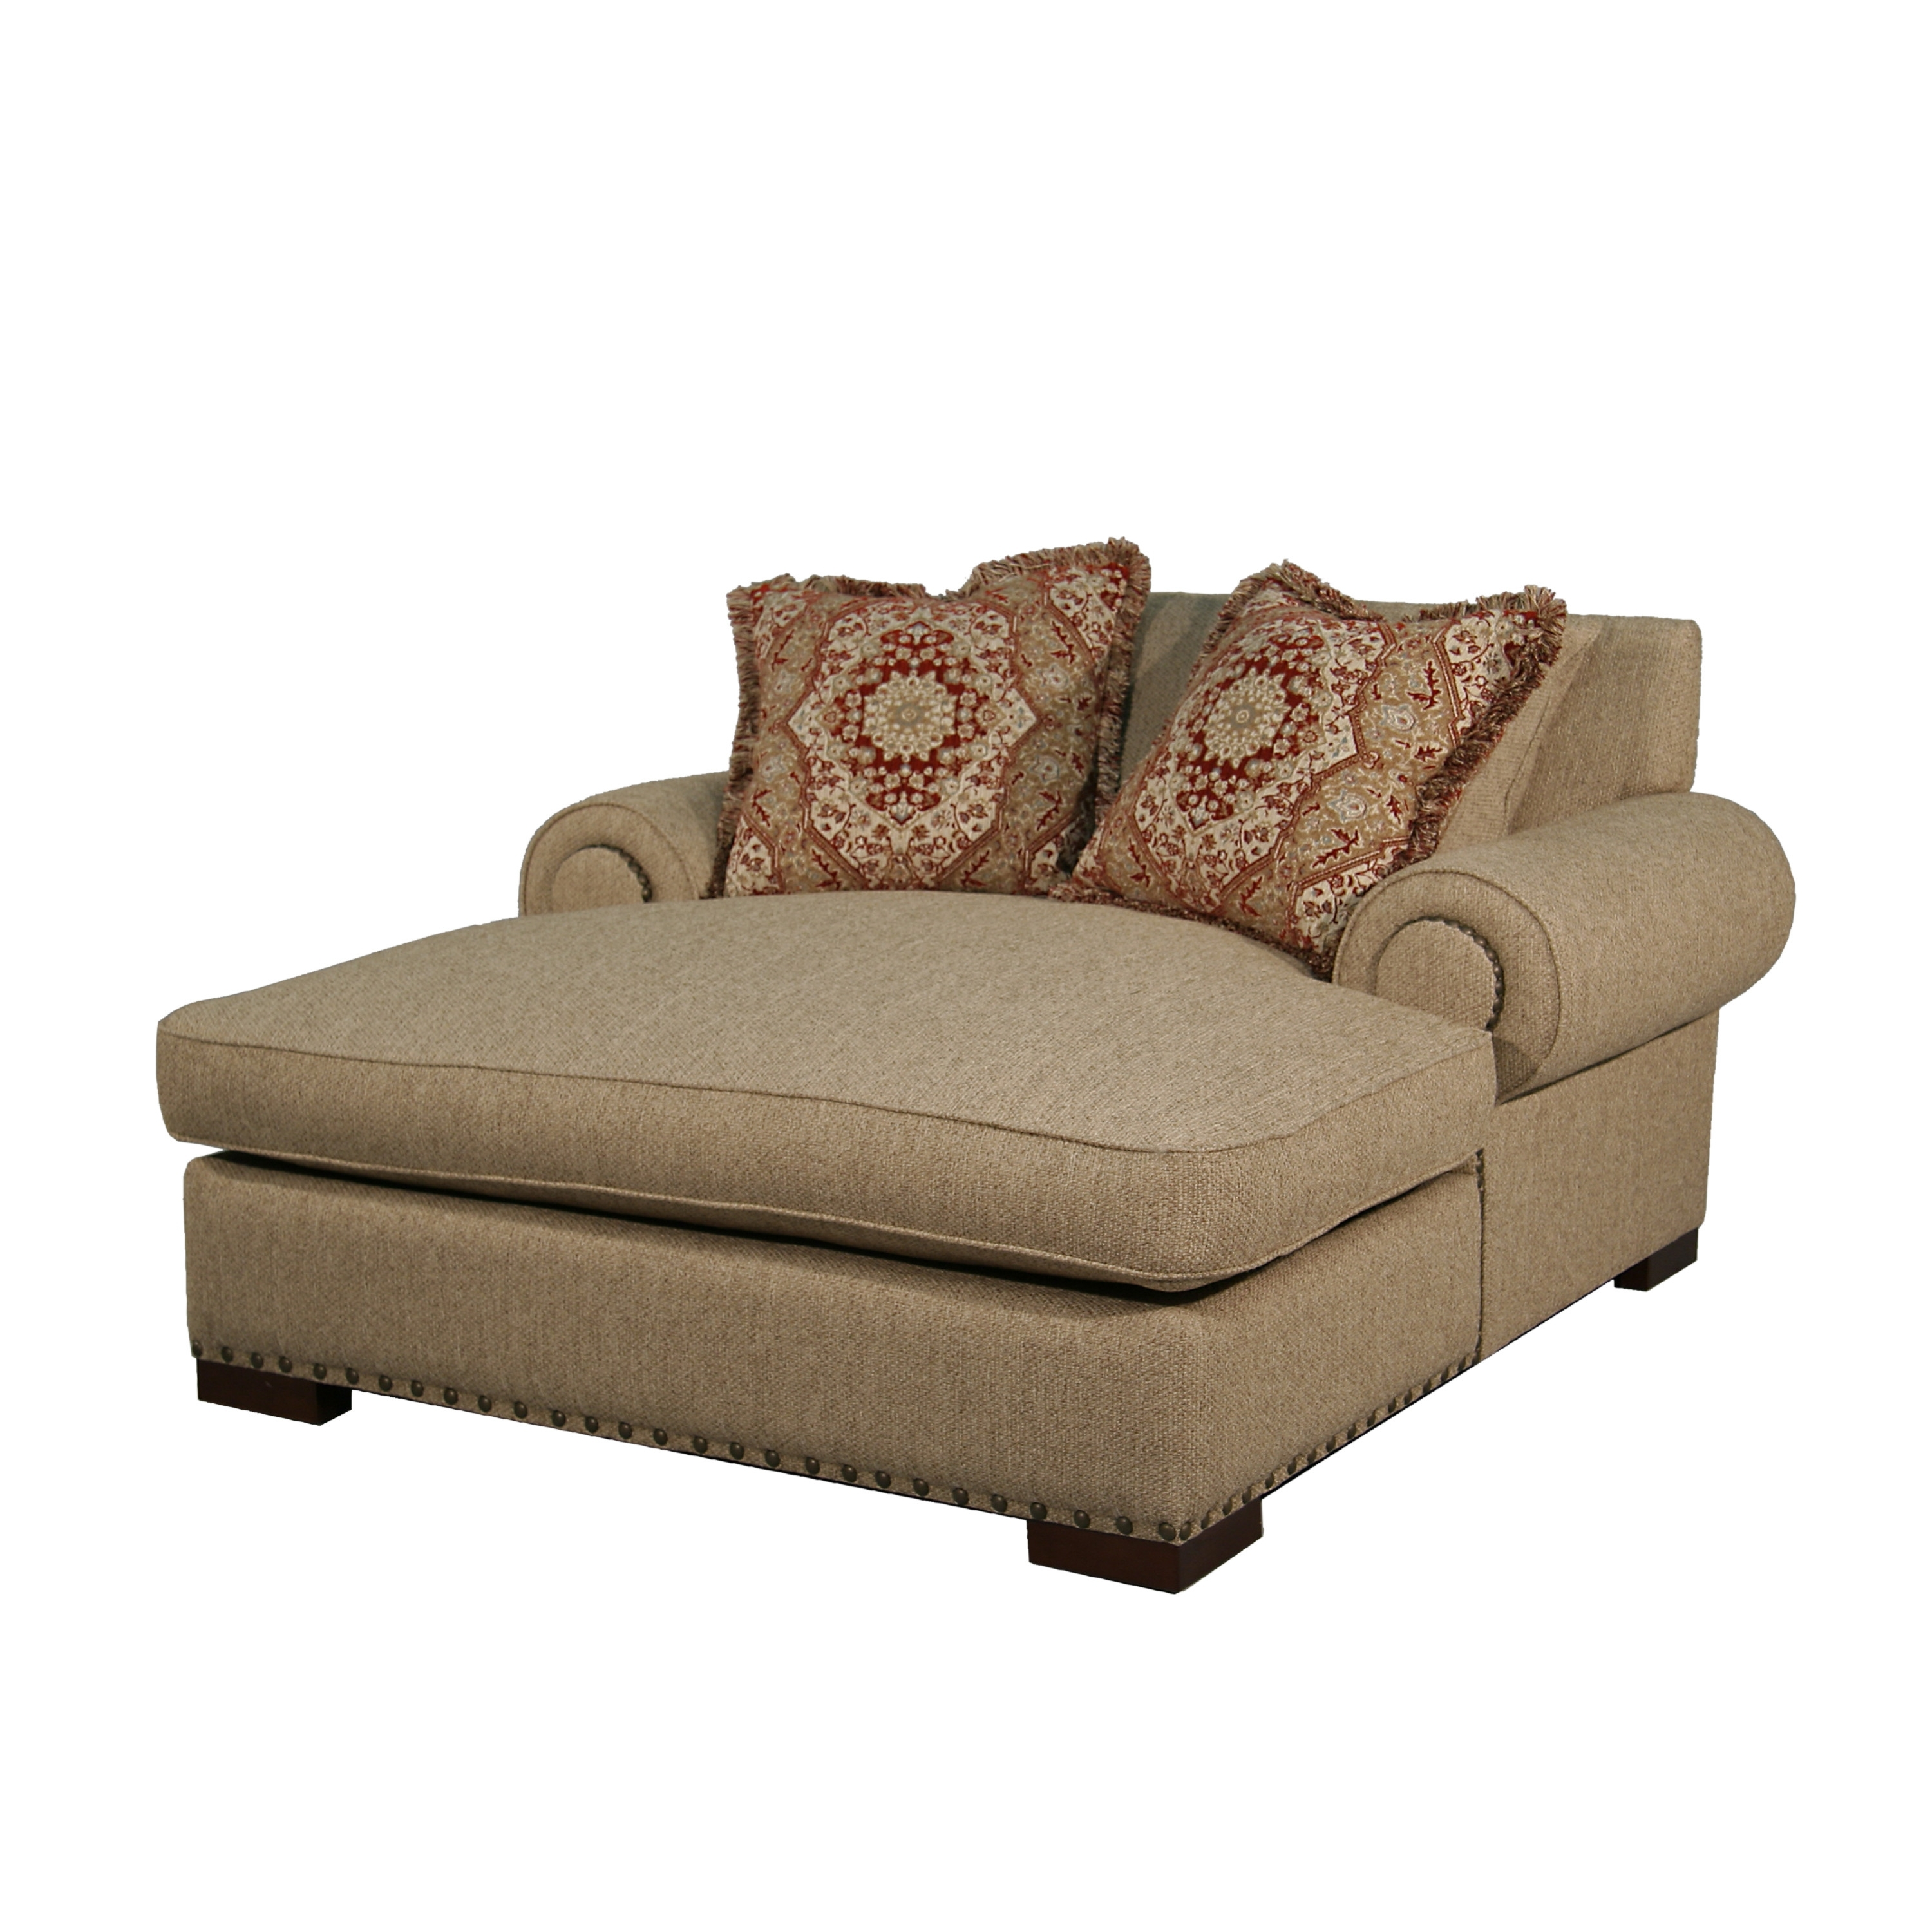 Latest Outdoor Double Wide Chaise Lounge Indoor Chair With Remodel 12 Throughout Wide Chaise Lounges (View 3 of 15)